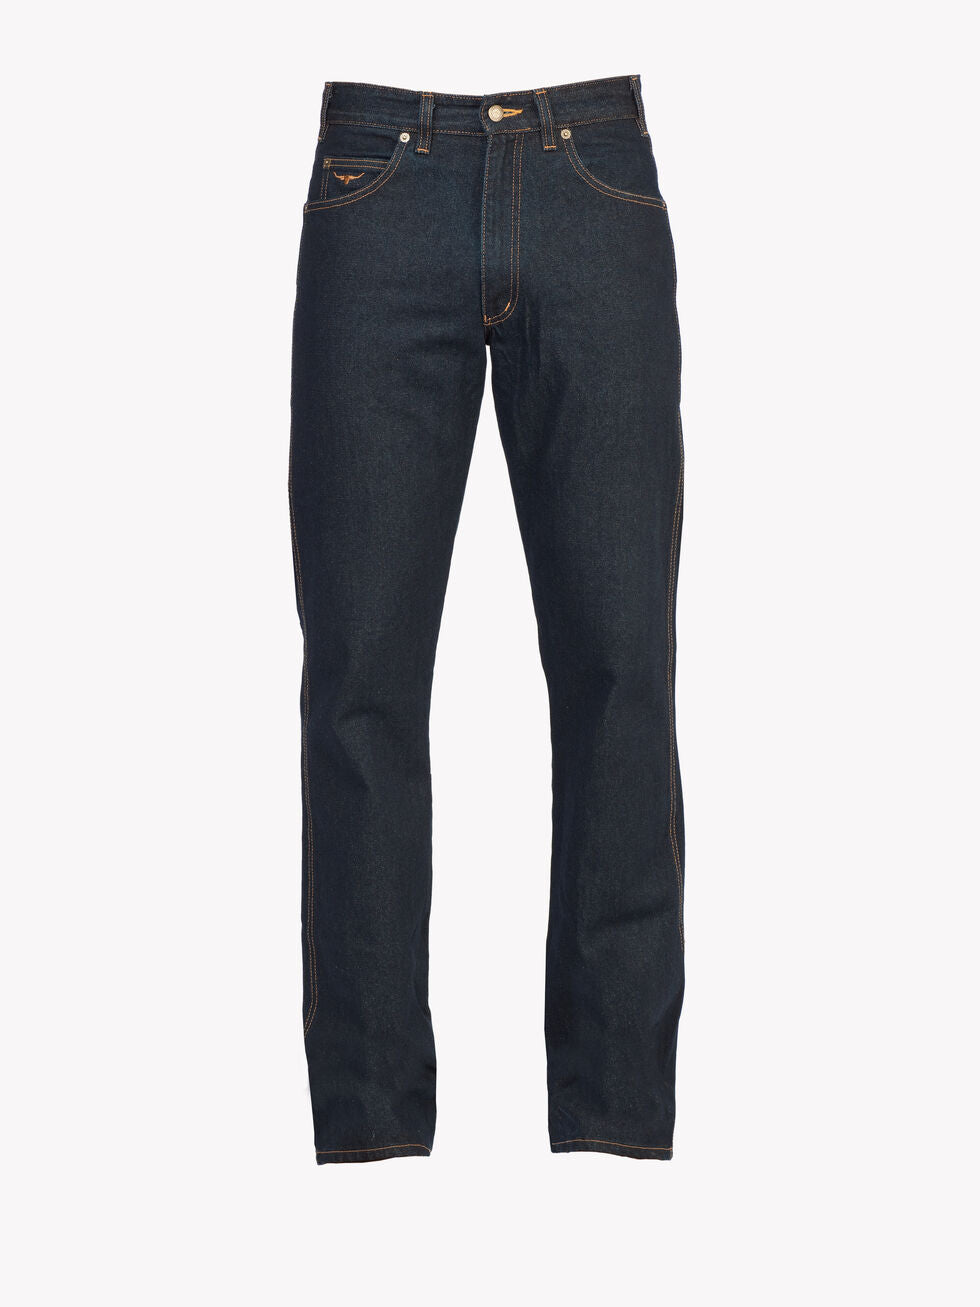 R.M Williams Legends Regular fit Boot Cut Jeans